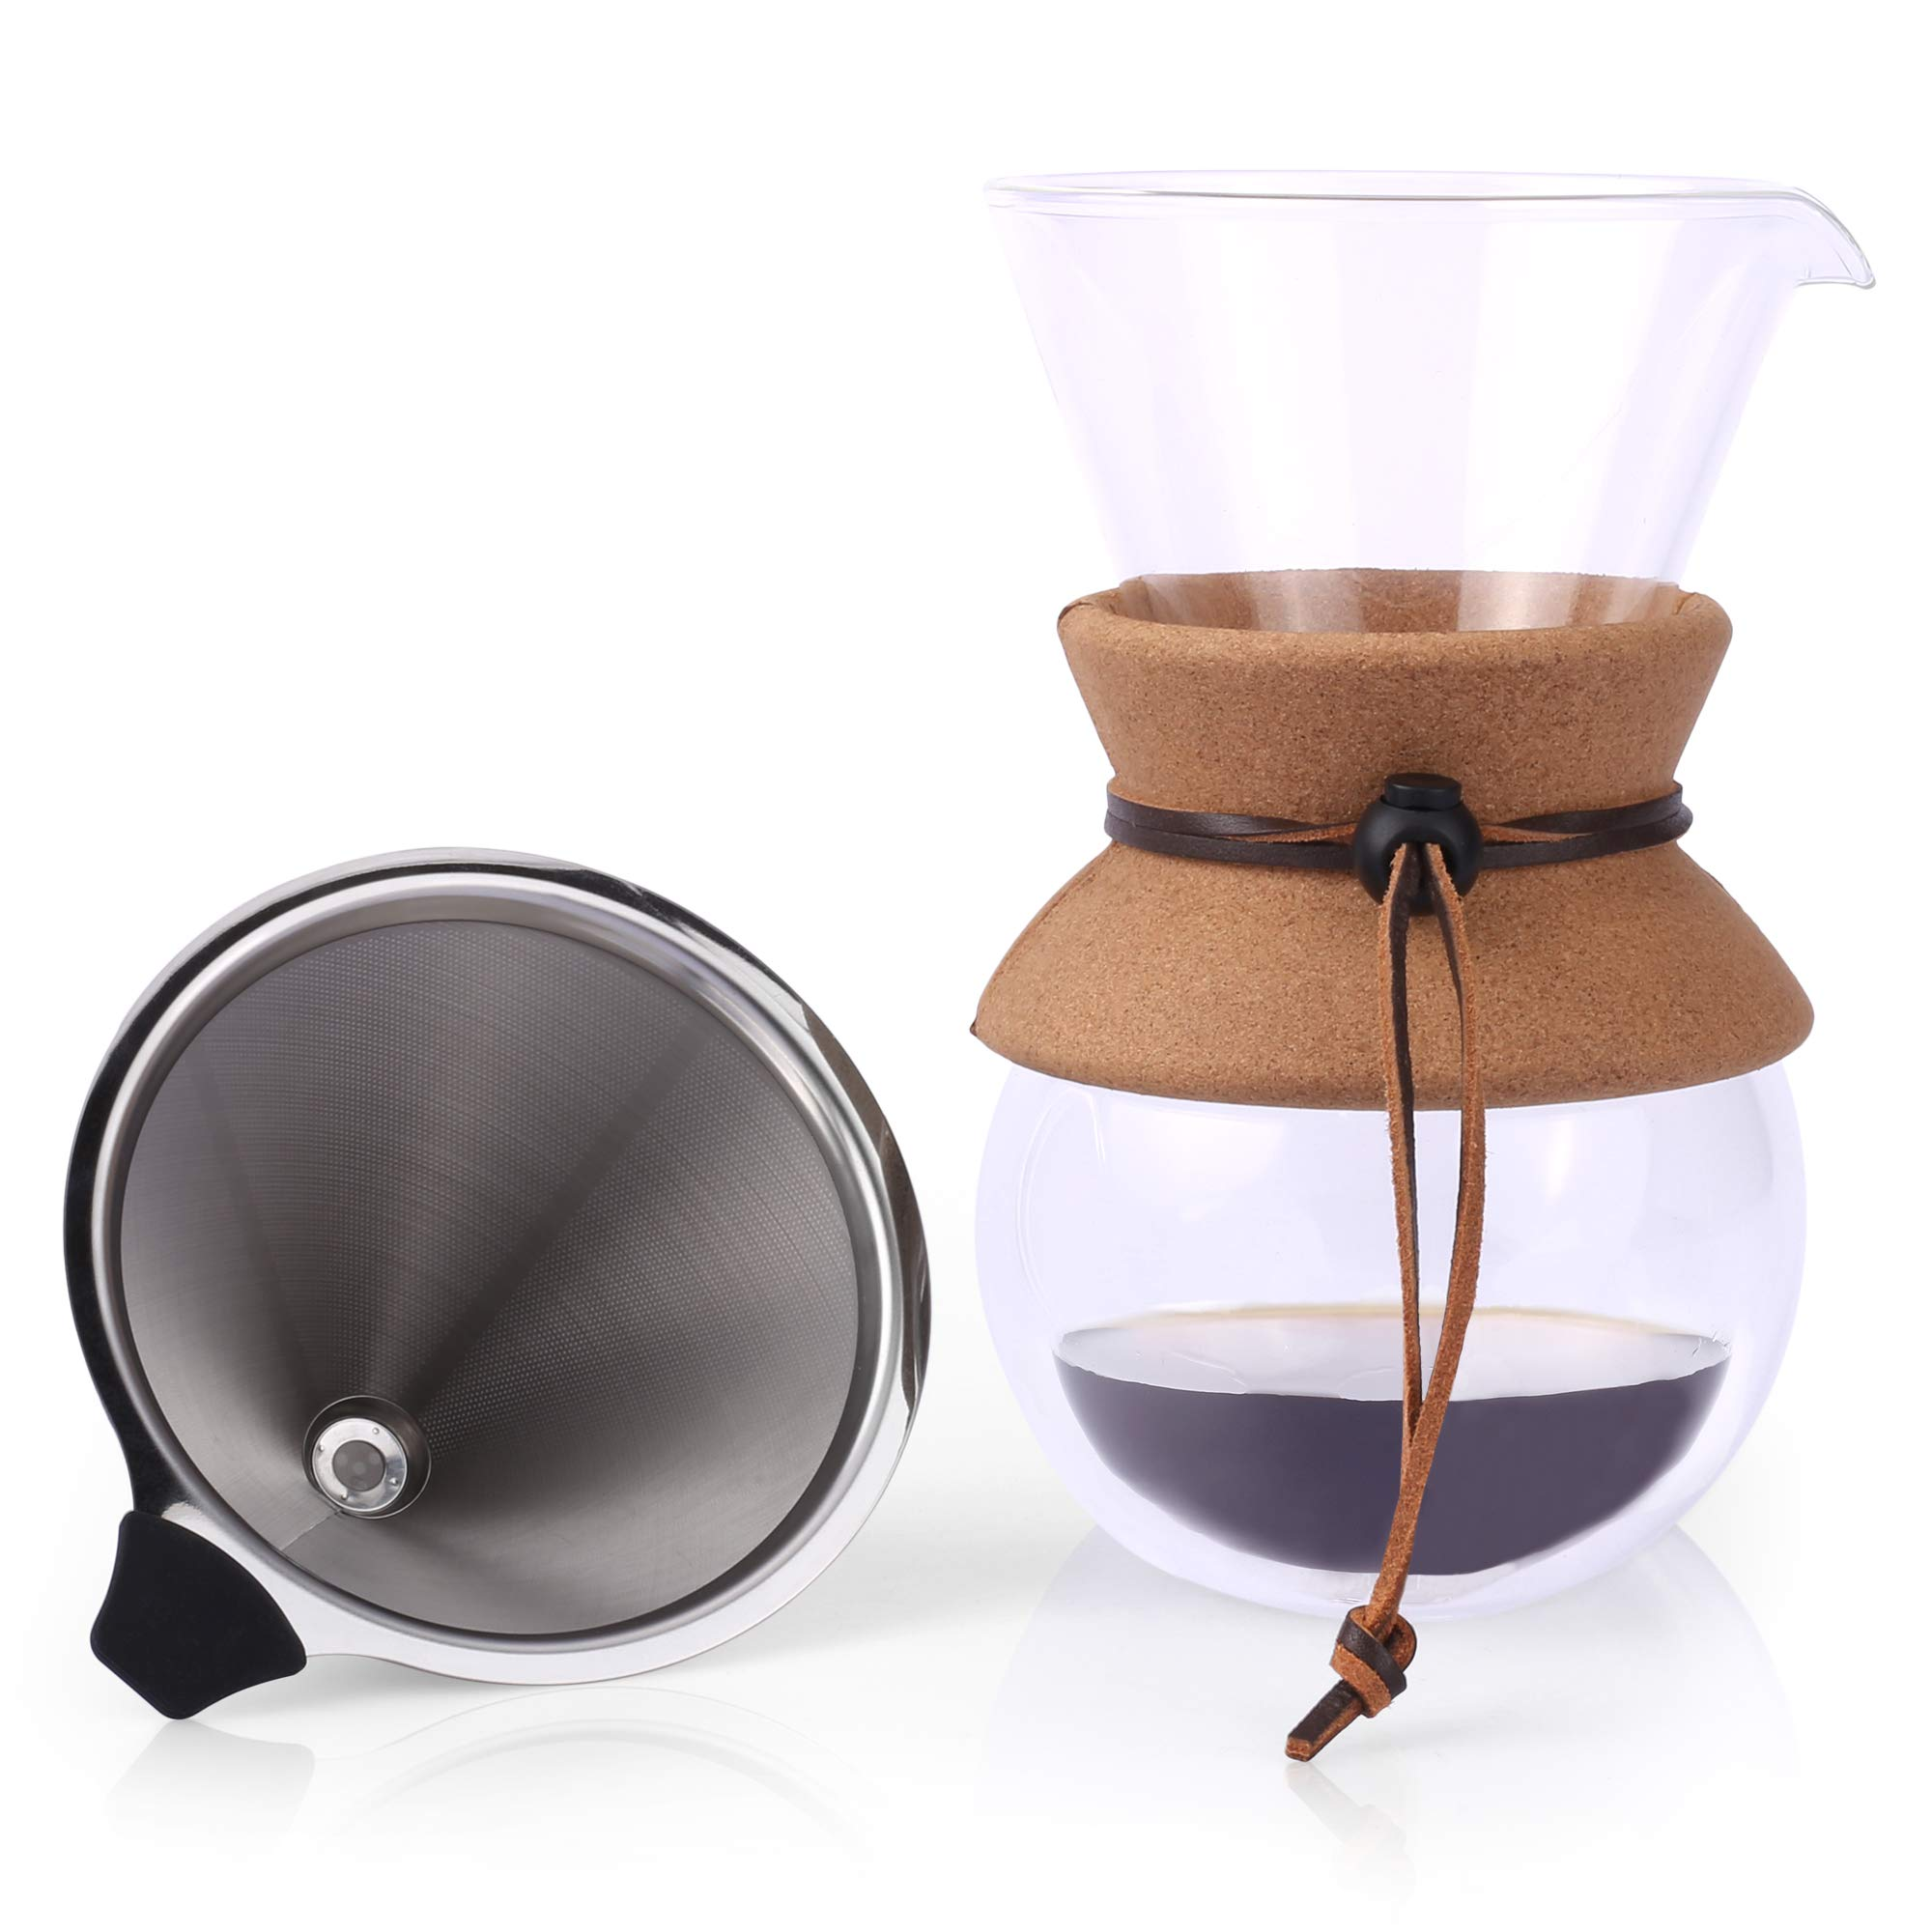 Pour Over Coffee Maker by Apace 2019 Premier Collection - Elegant Double Wall Glass Coffee Dripper Brewer Pot w/Carafe & Permanent Stainless Steel Filter (27 oz) by Apace Living